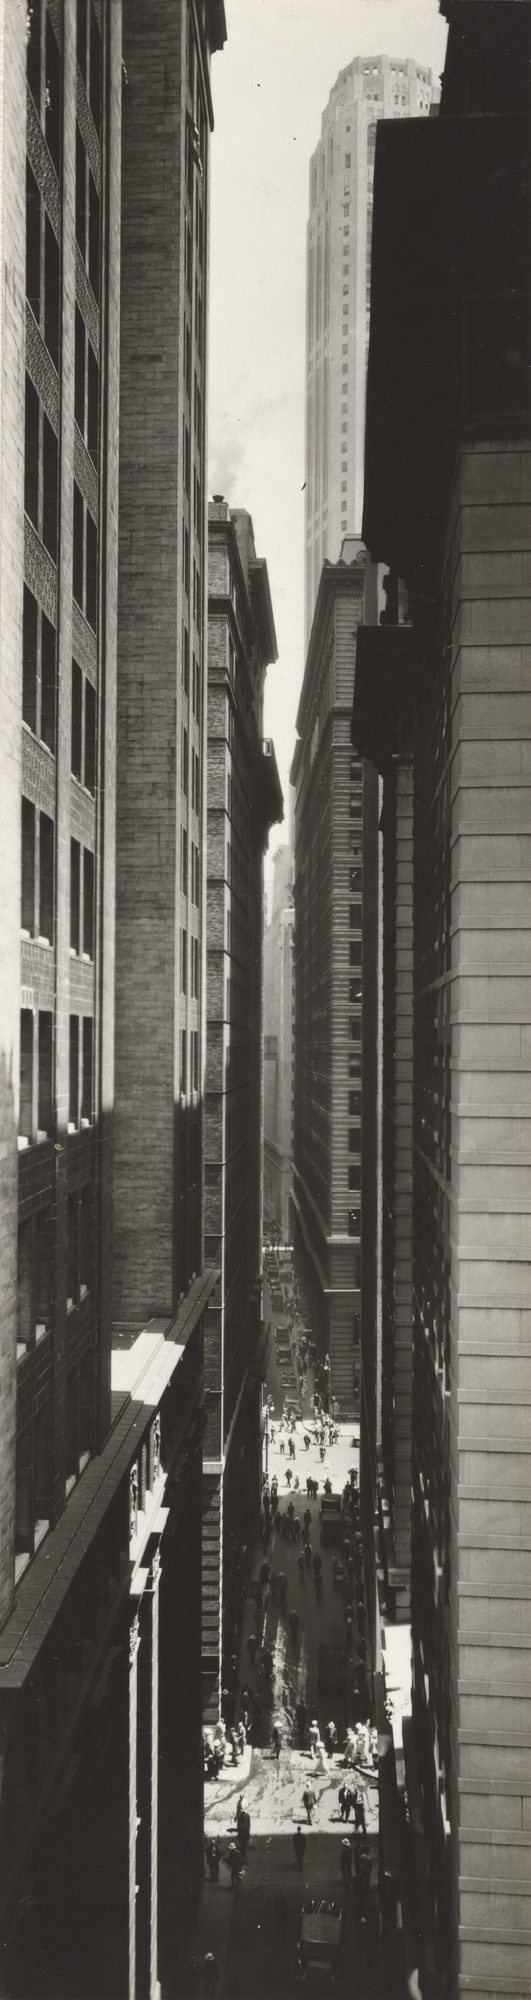 Berenice Abbott. Exchange Place, New York. 1933